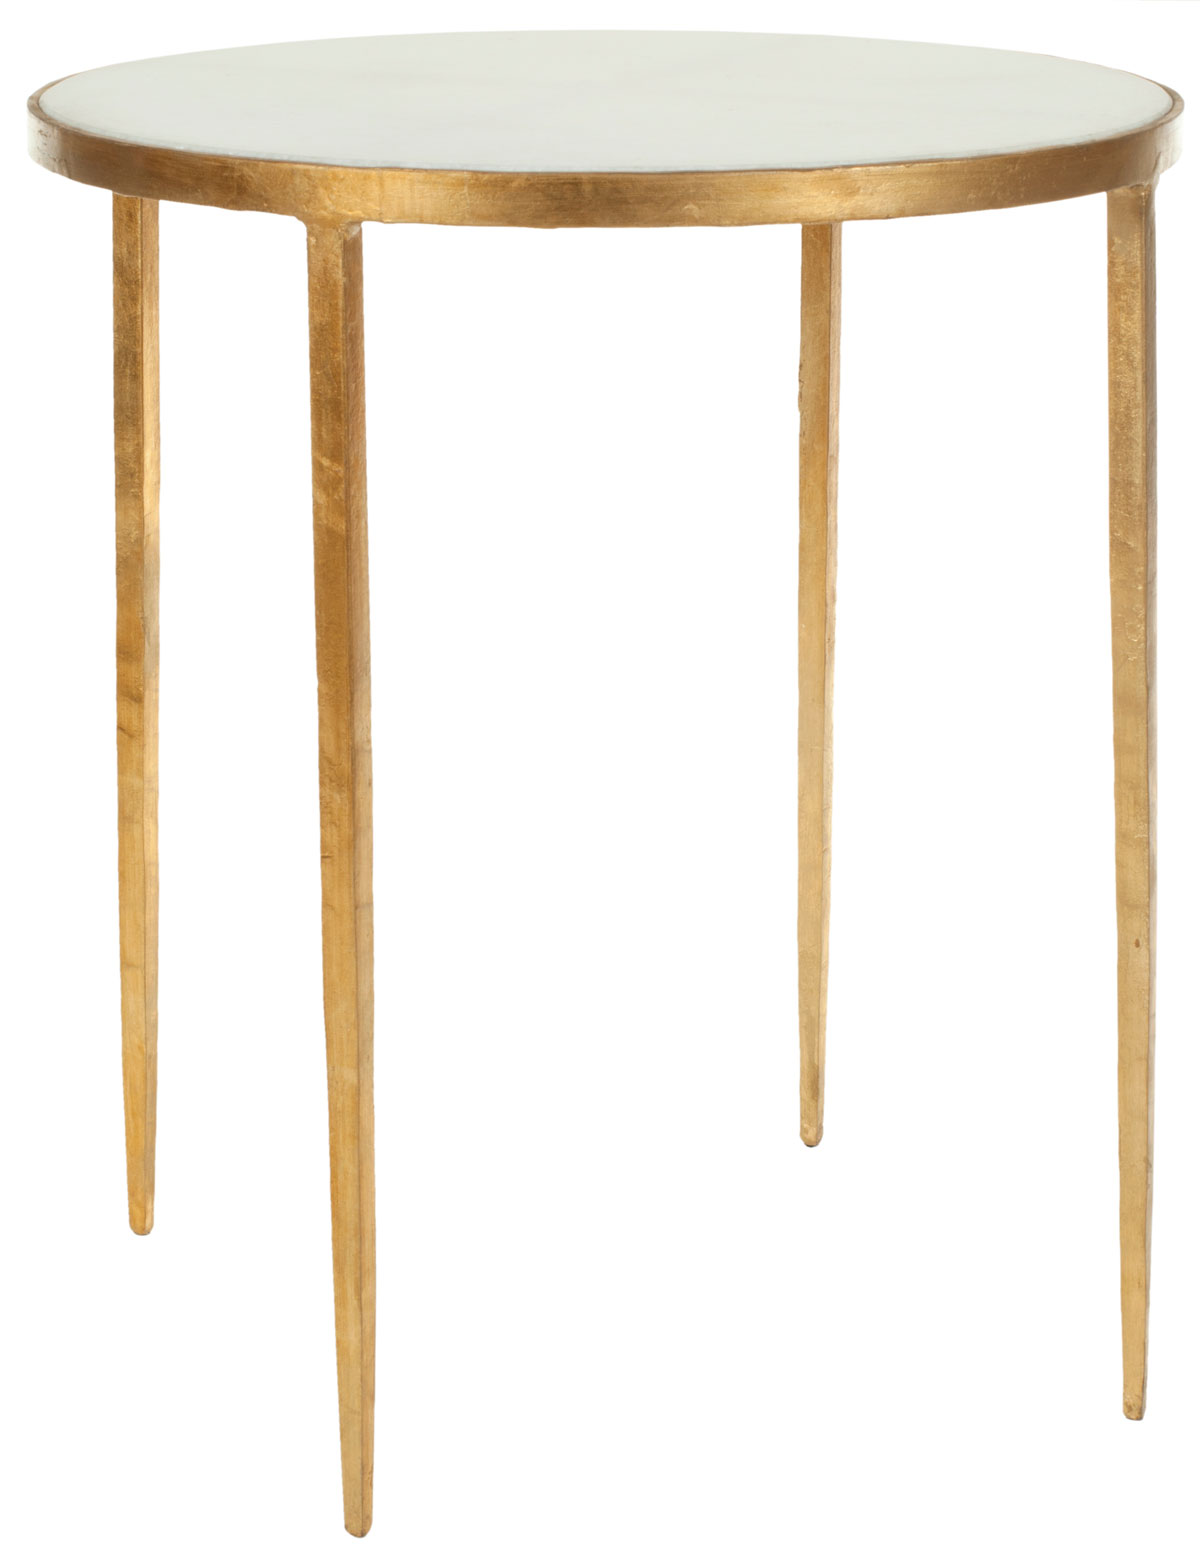 accent tables furniture safavieh front white gold table share this product baroque console carpet cover strip home computer desks mirrored cube side round glass metal end night